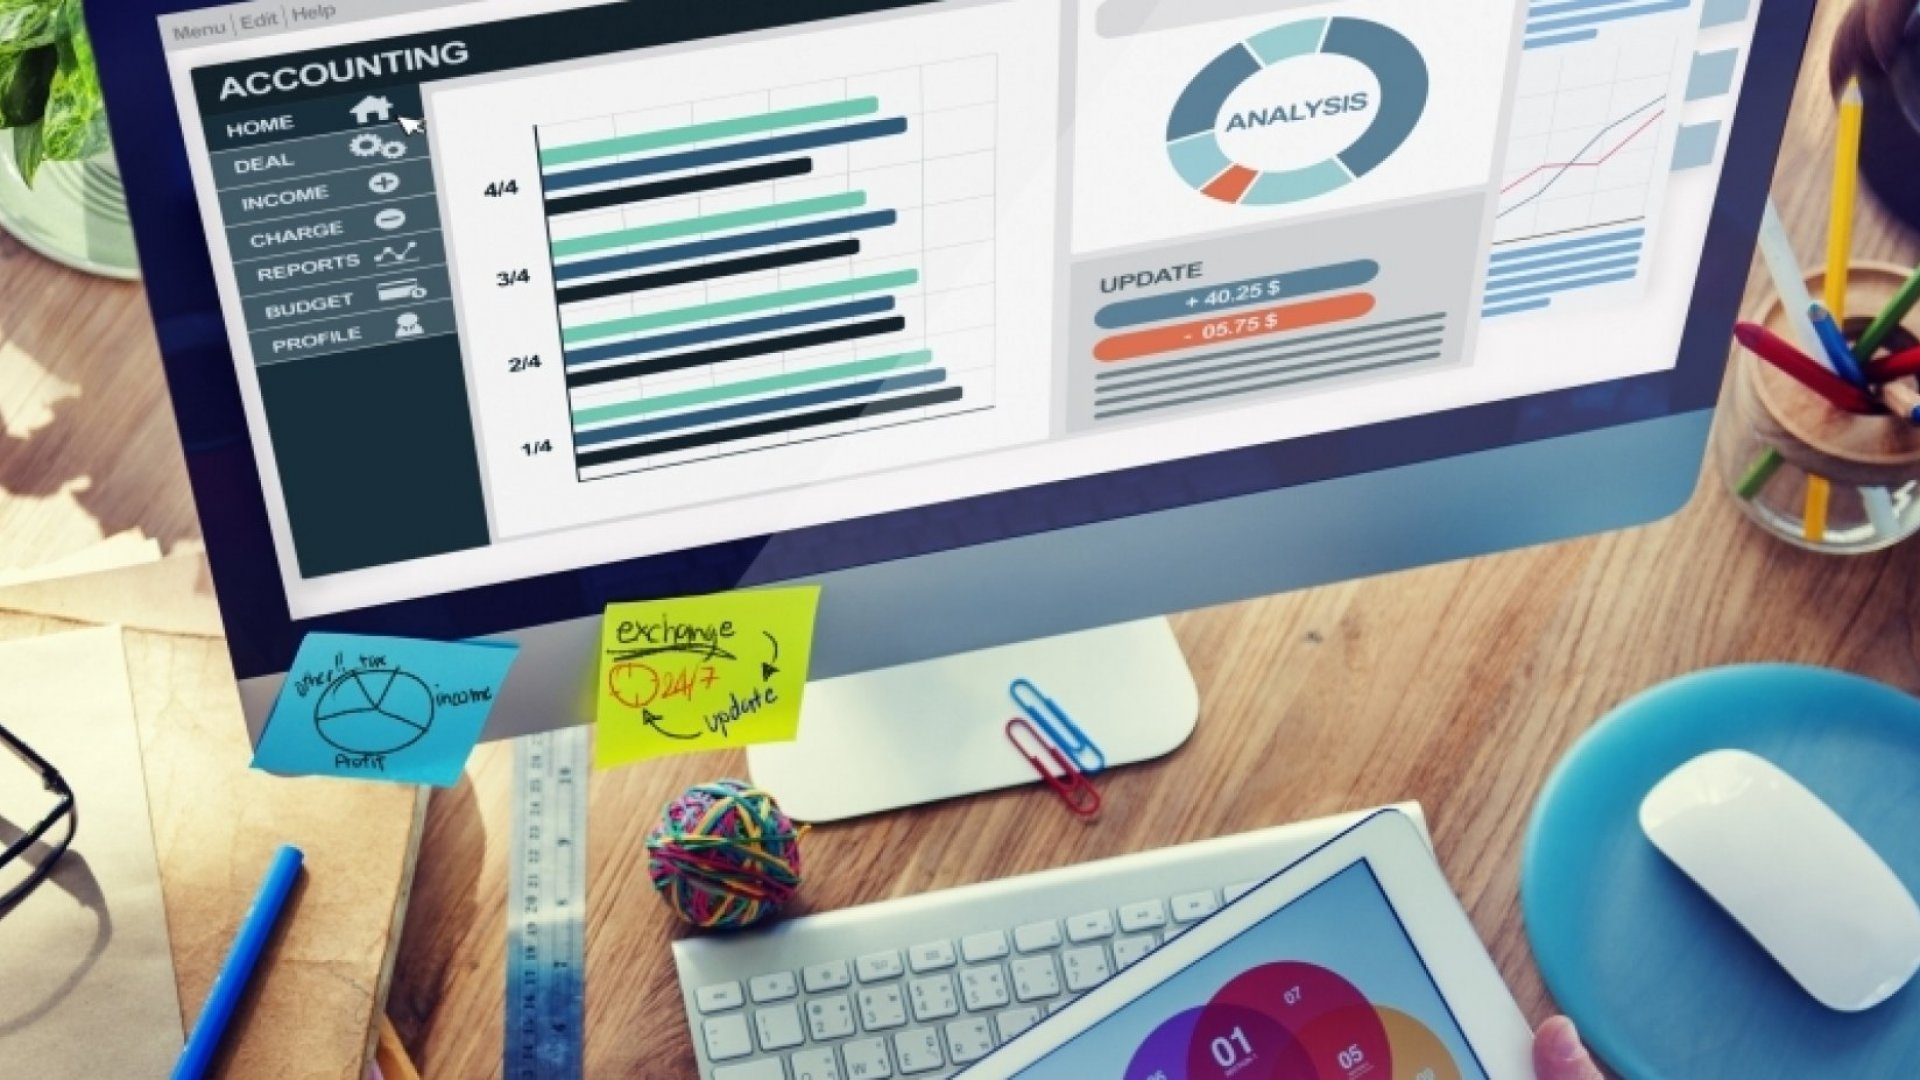 5 Ways to Succeed With Digital Marketing in 2016